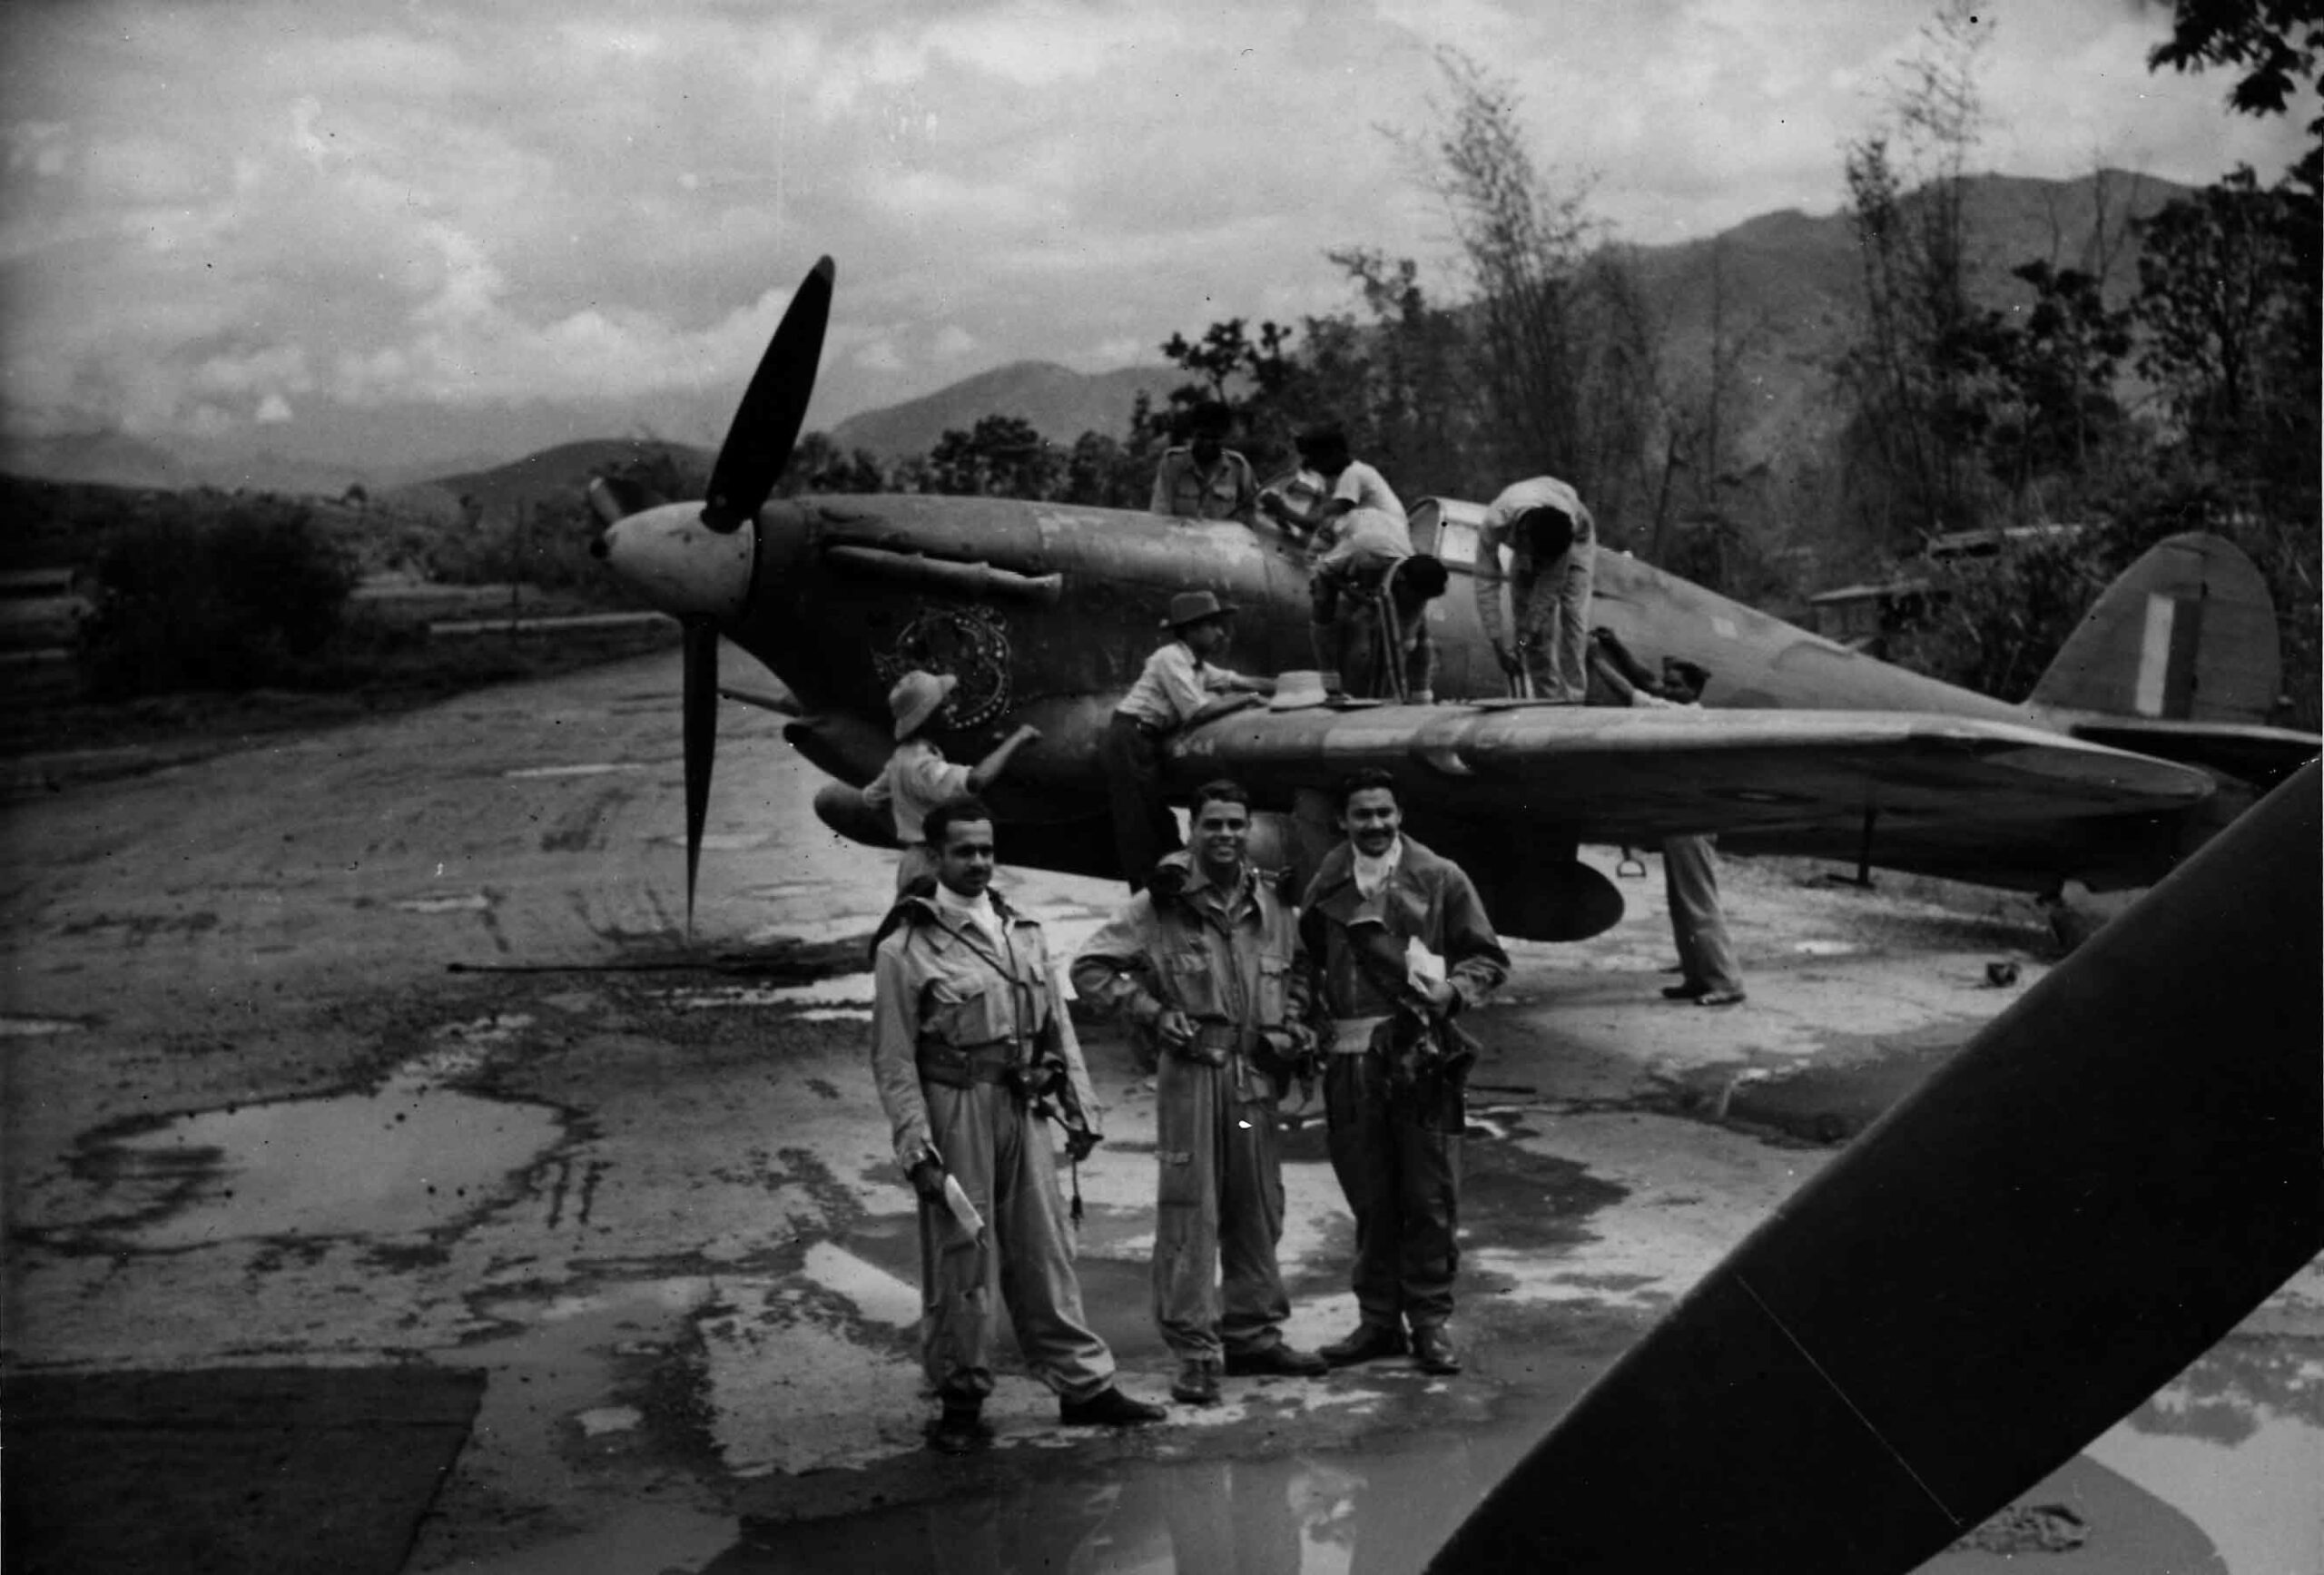 Indian Air Force pilots standing in front of a Hurricane as ground crew clean the canopy and re-arm the aircraft, 1944 (RAFM PC71/19/1754)